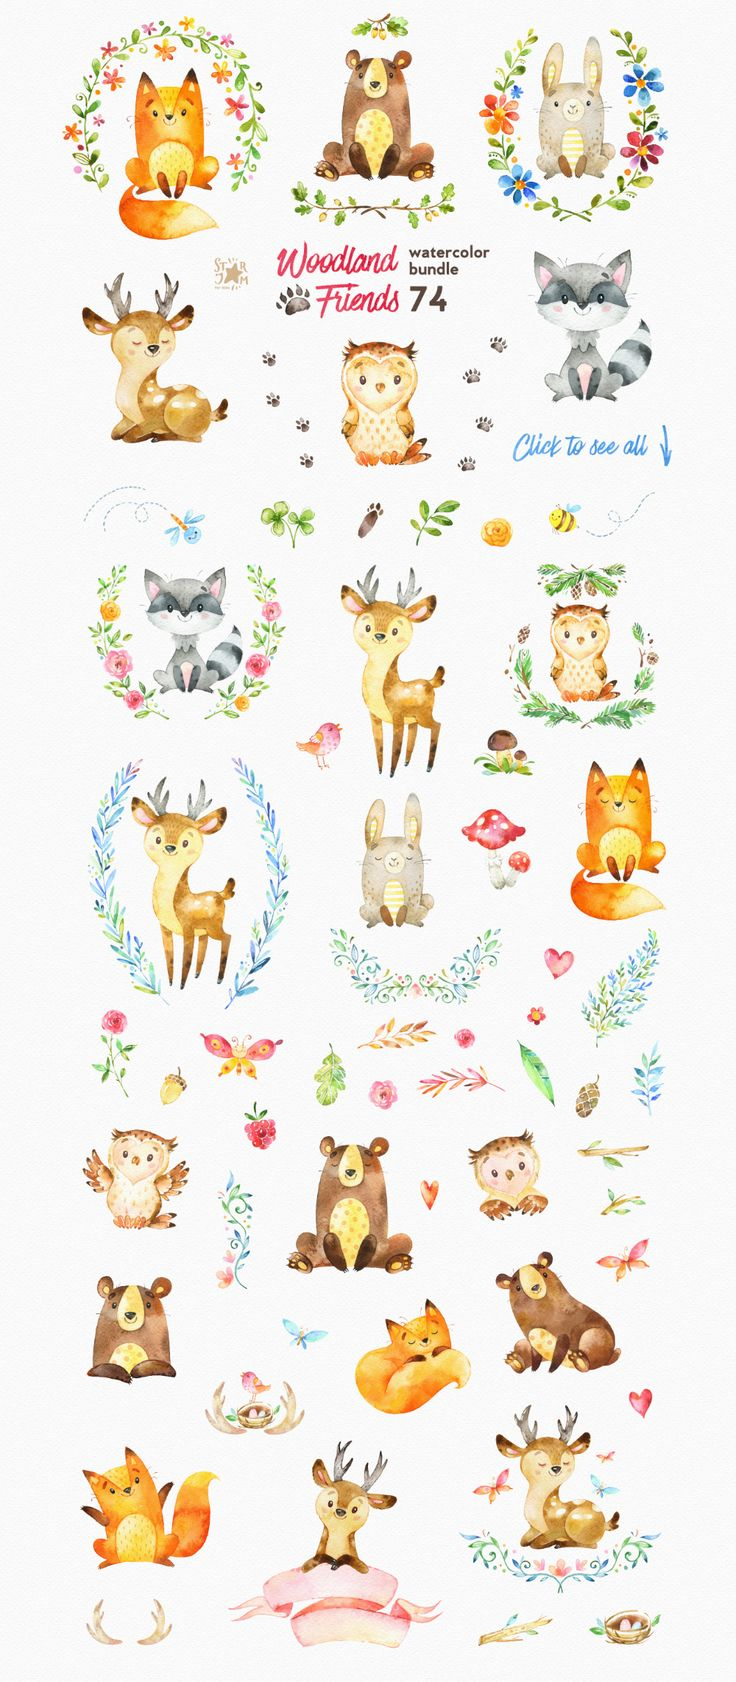 Bottle brush woodland animals - Woodland Friends Watercolor Bundle